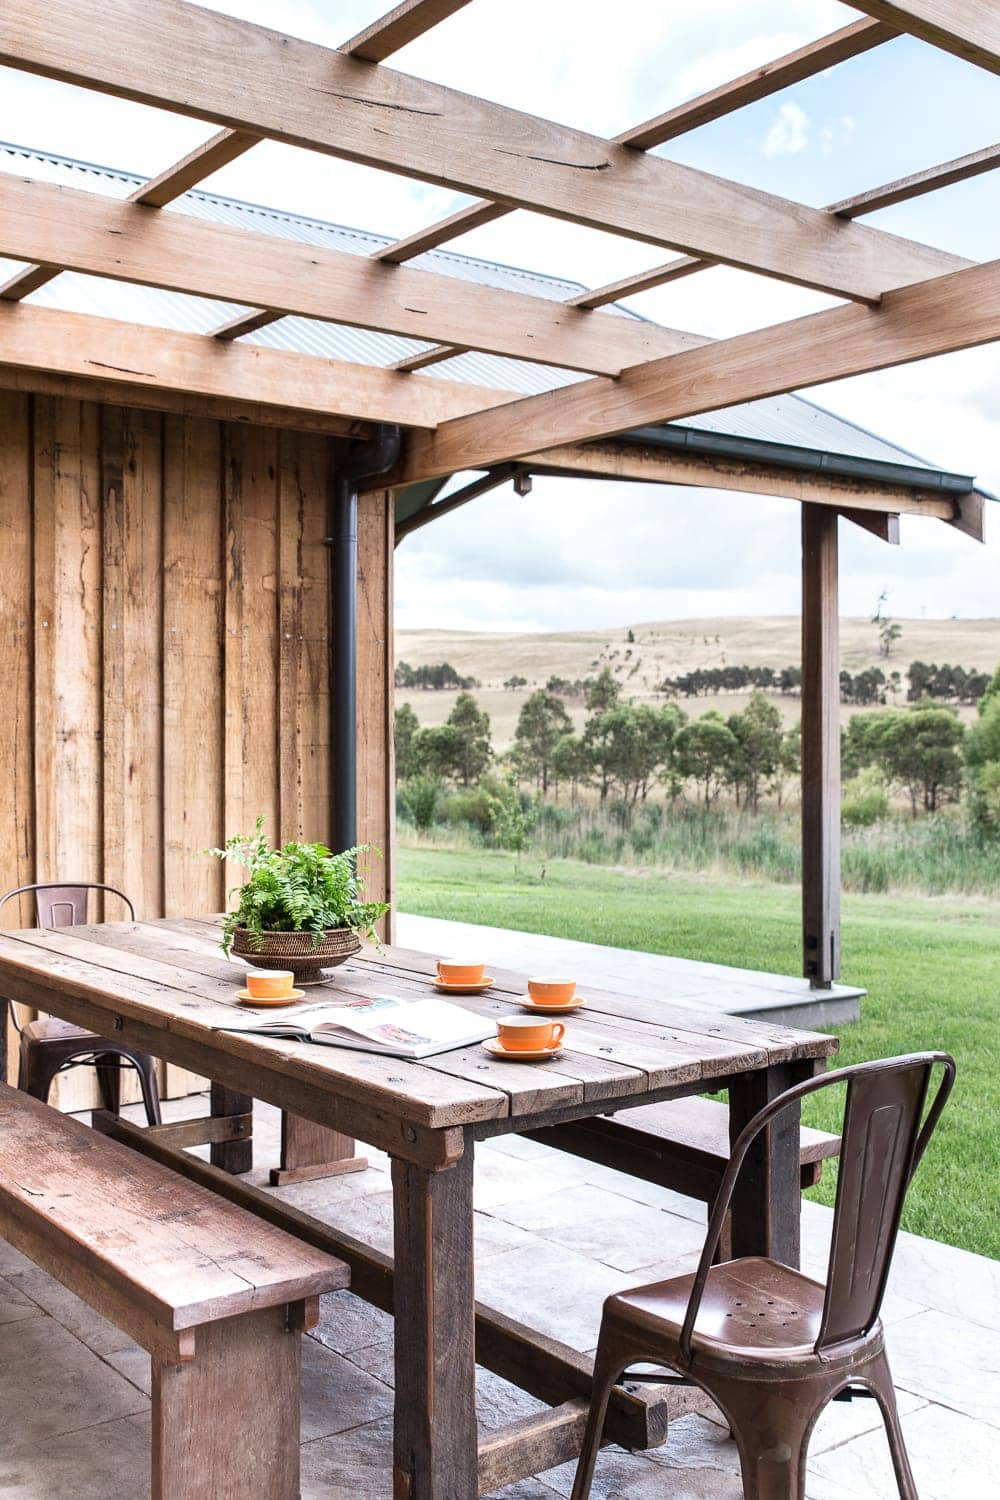 bendooley estate review exterior log cabin industrial style outdoor table on back patio